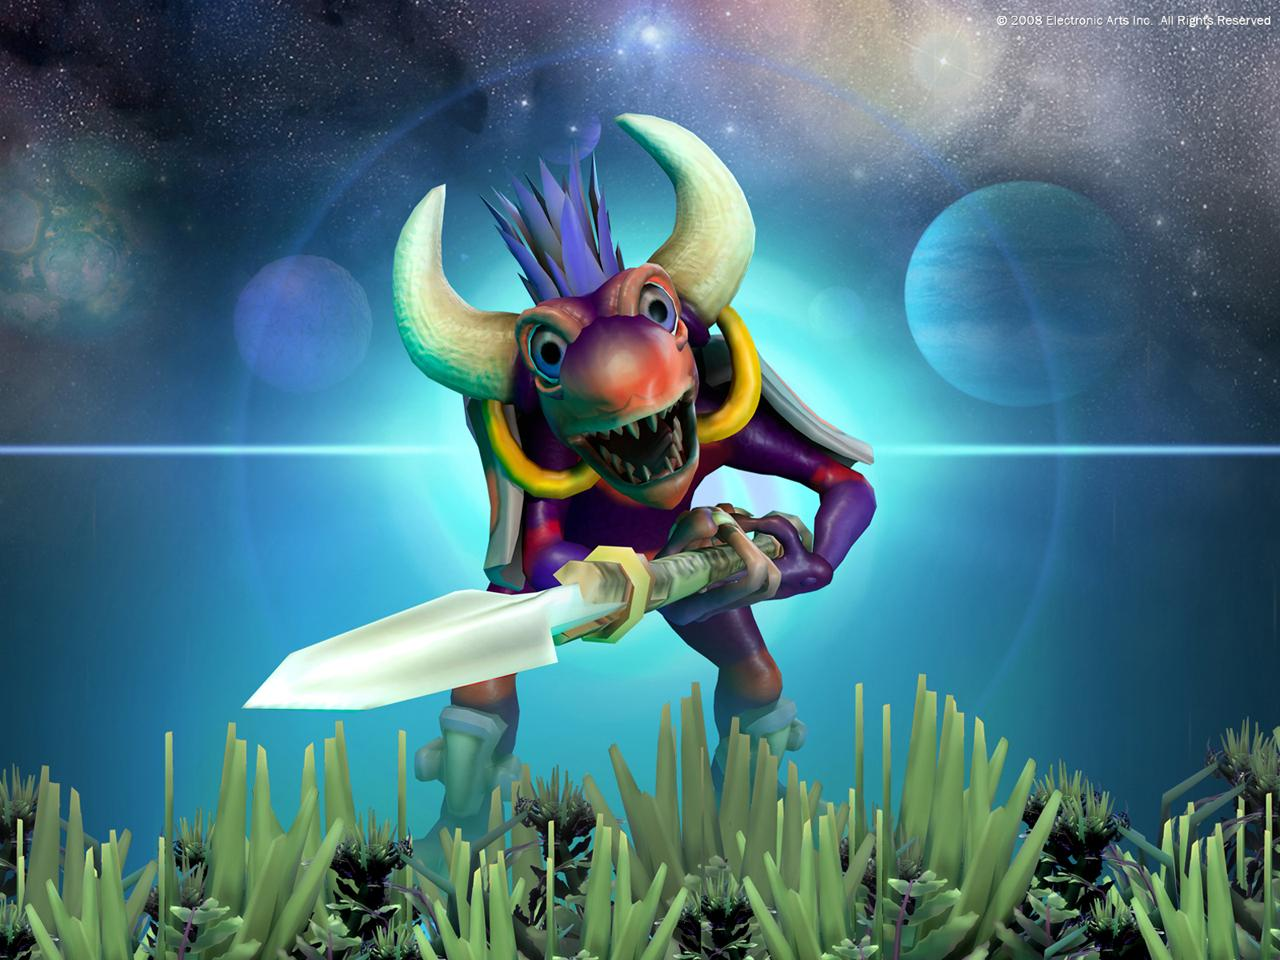 Spore Wallpapers   Games Wallpapers 1 1280x960